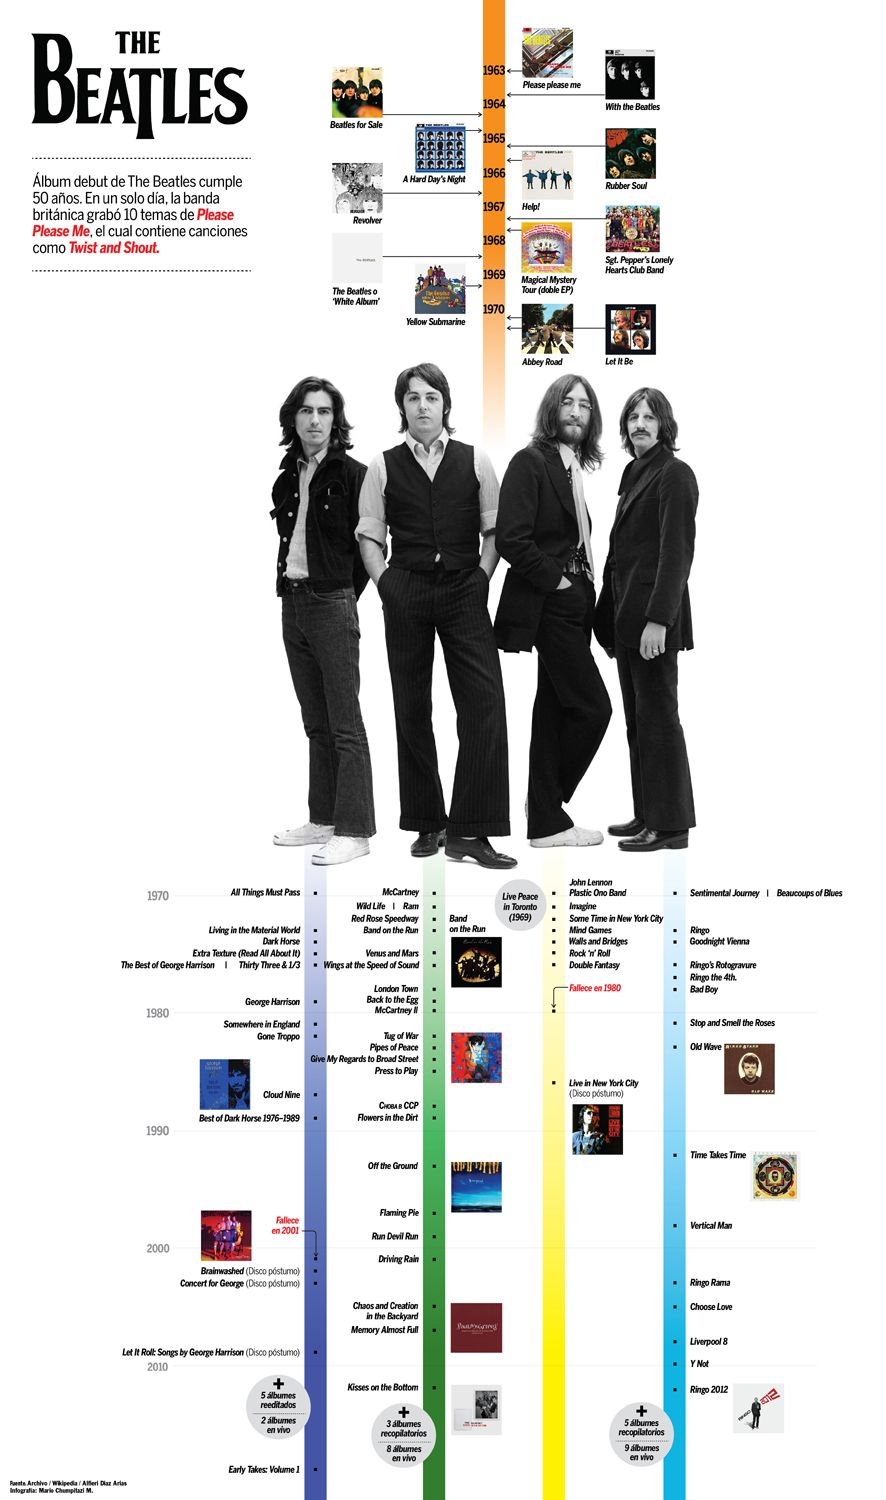 This Is Pretty Cool The Orange Timeline Represents Discography Of Beatles As A Band Whereas Different Colored Timelines Underneath Represent